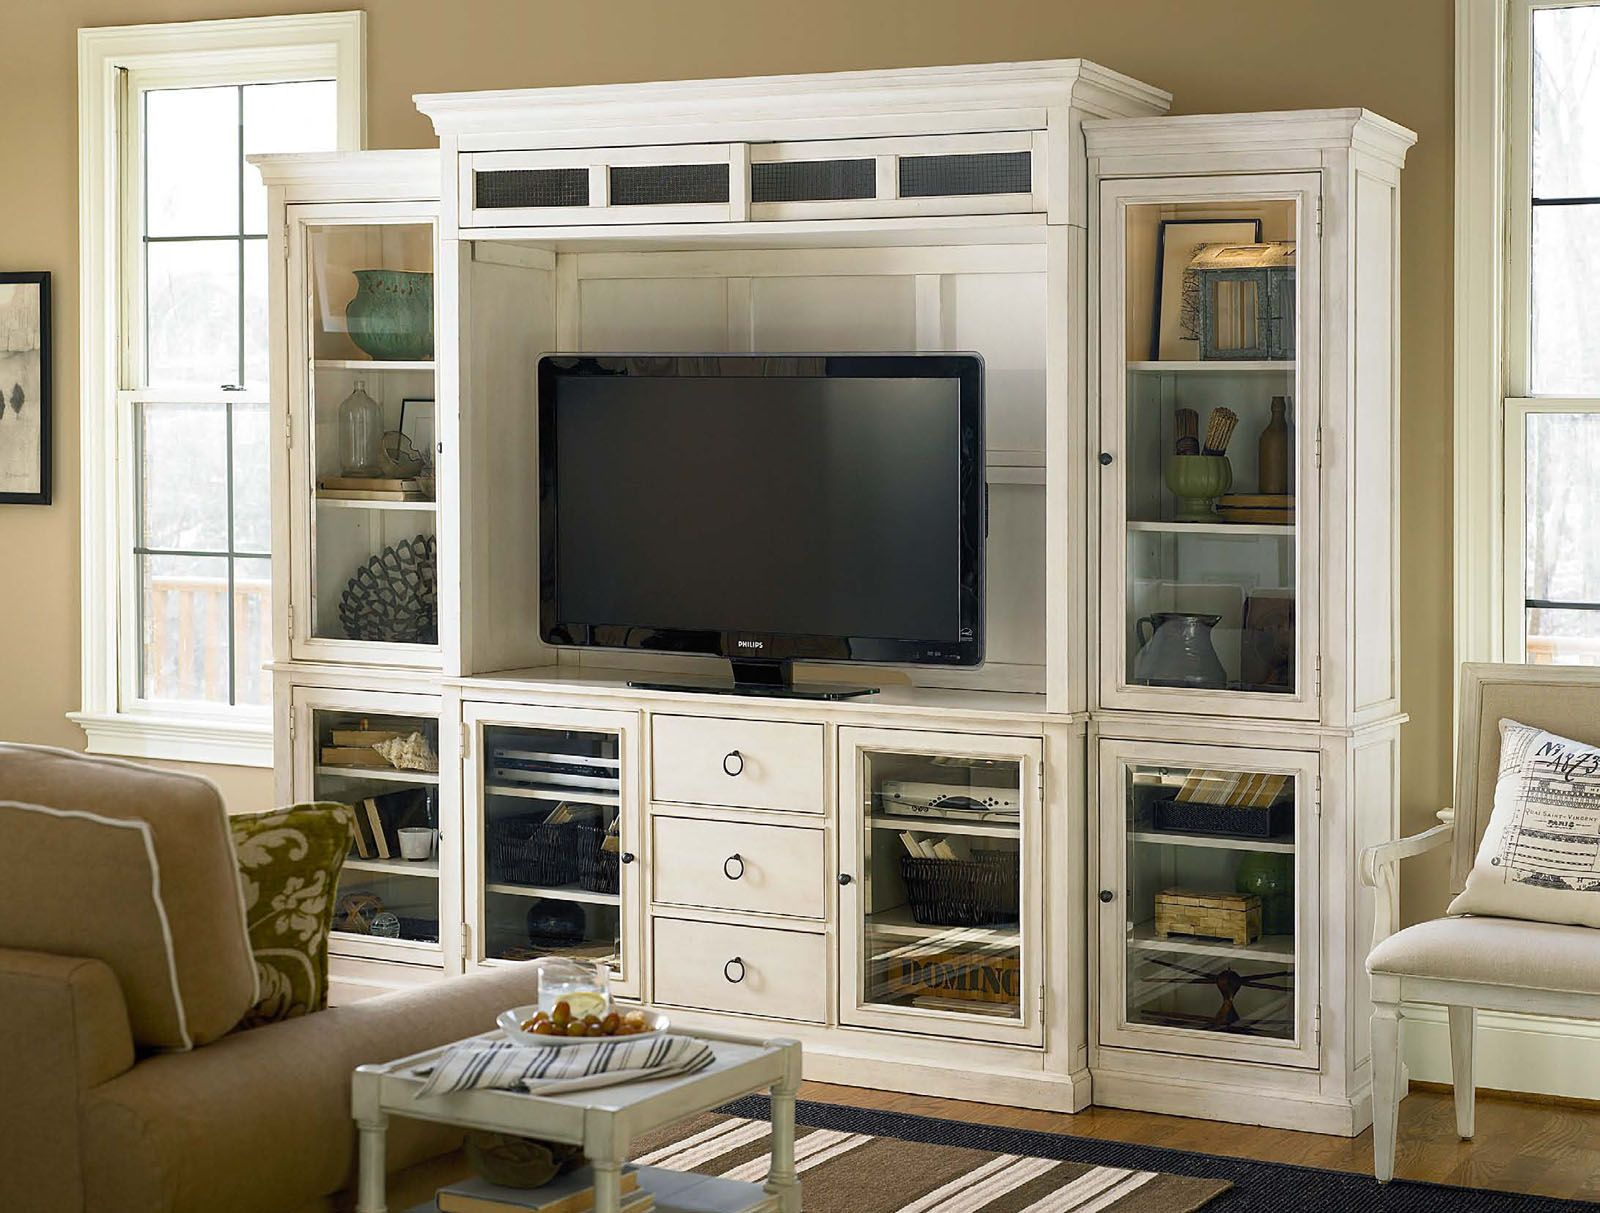 Universal Furniture Summer Hill Home Entertainment System in Cotton 987969 CLEARANCE